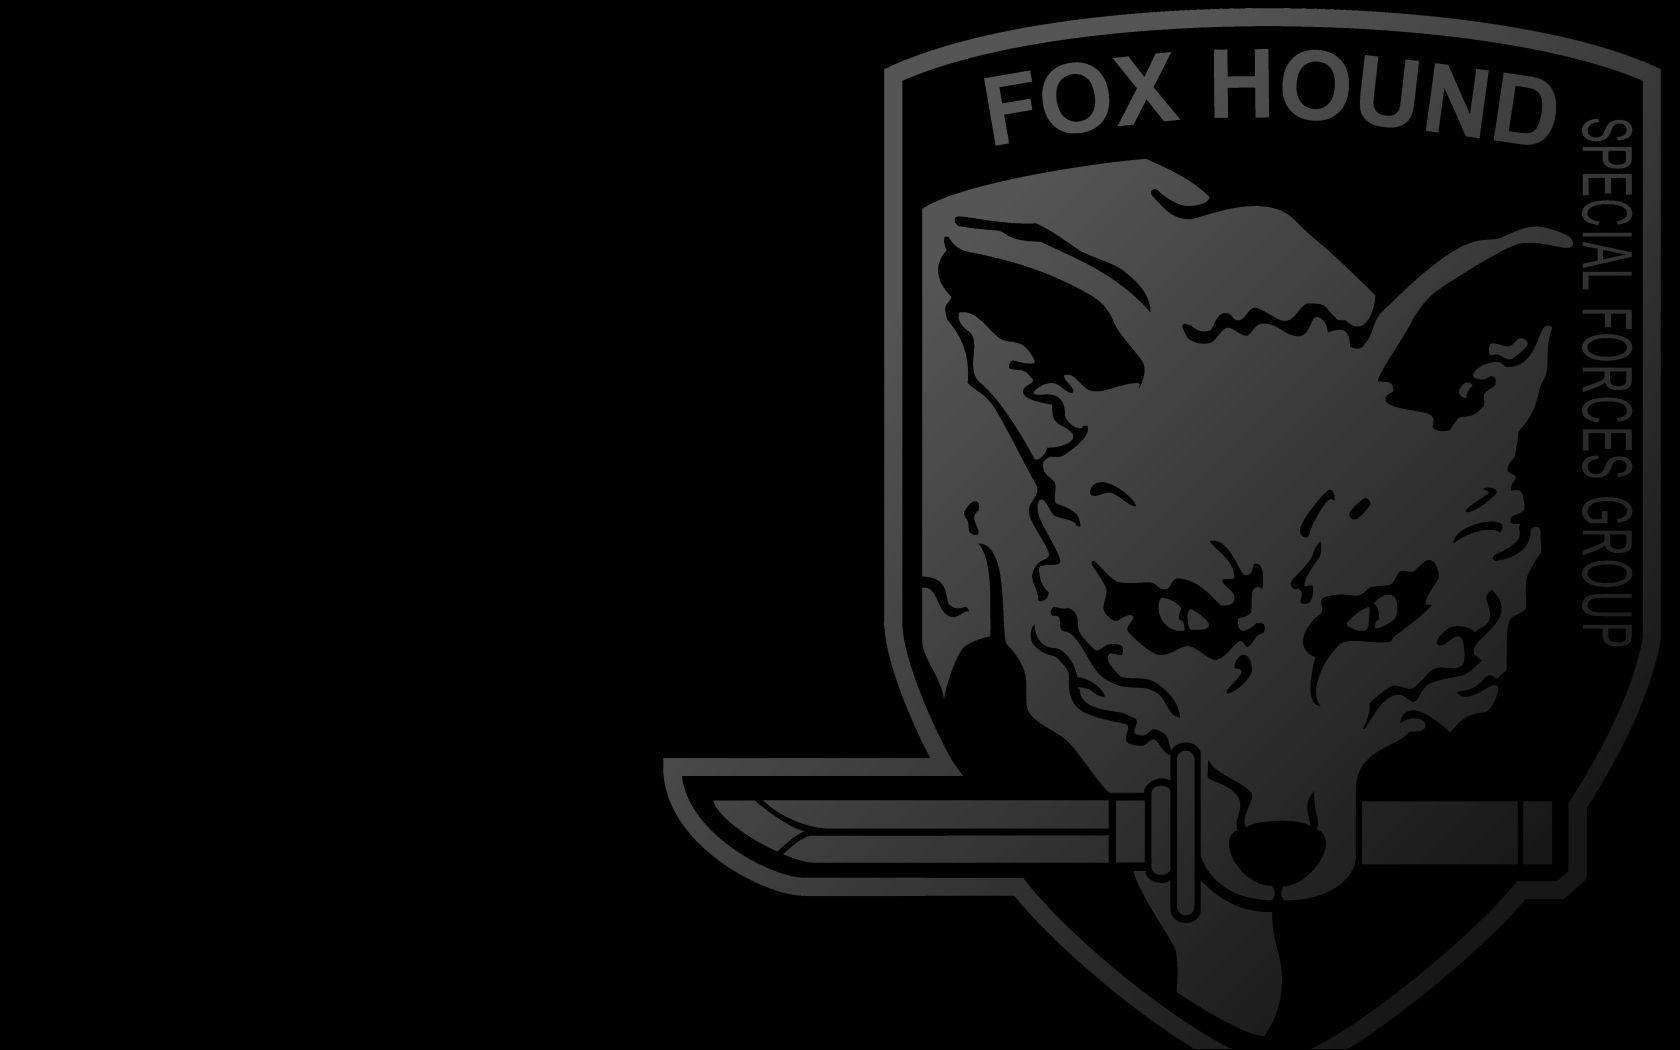 Foxhound Iphone 4 Wallpapers